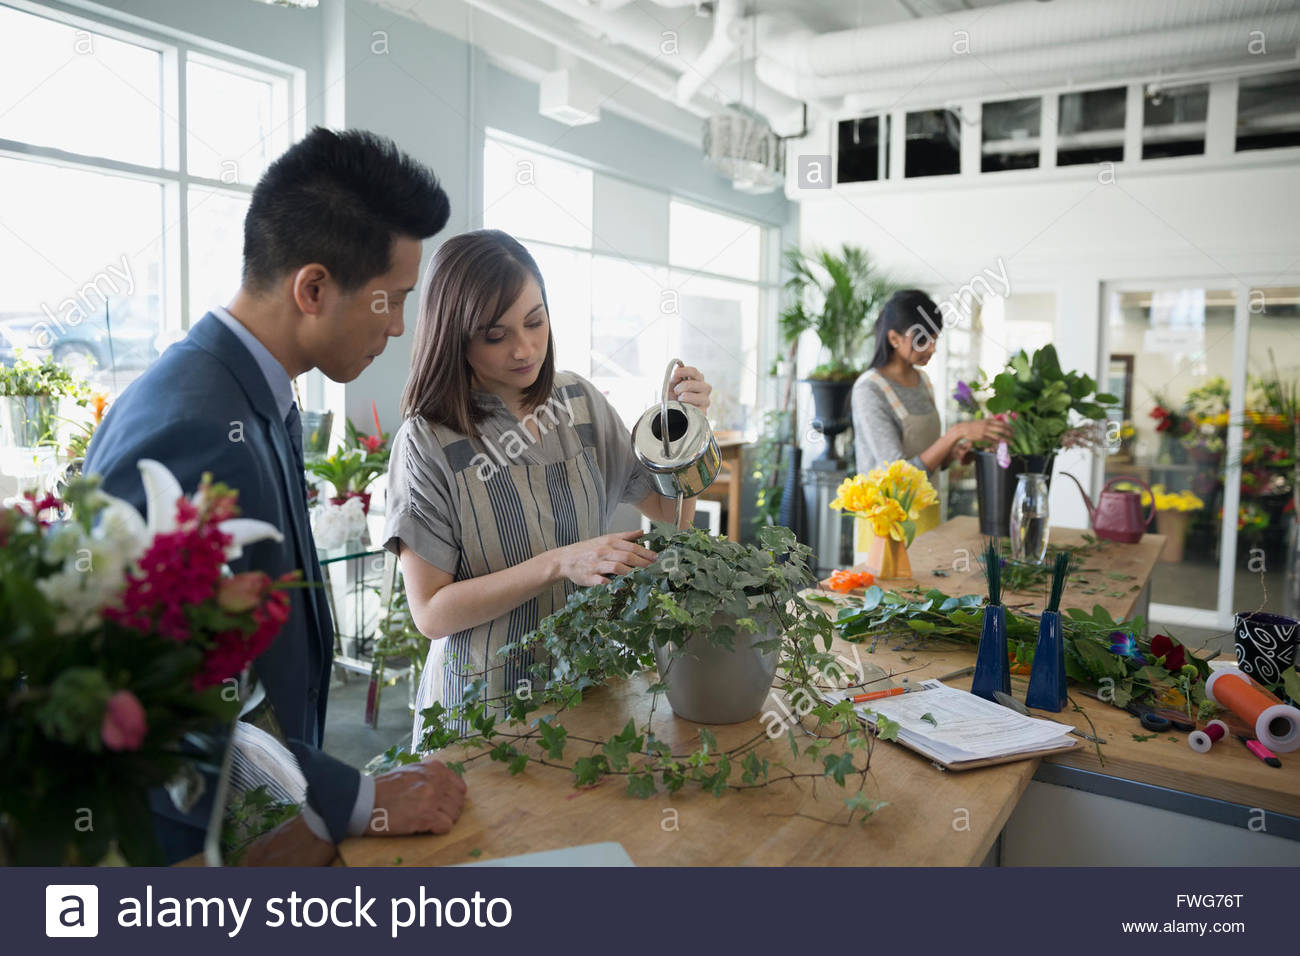 Customer watching florist watering plant in flower shop - Stock Image